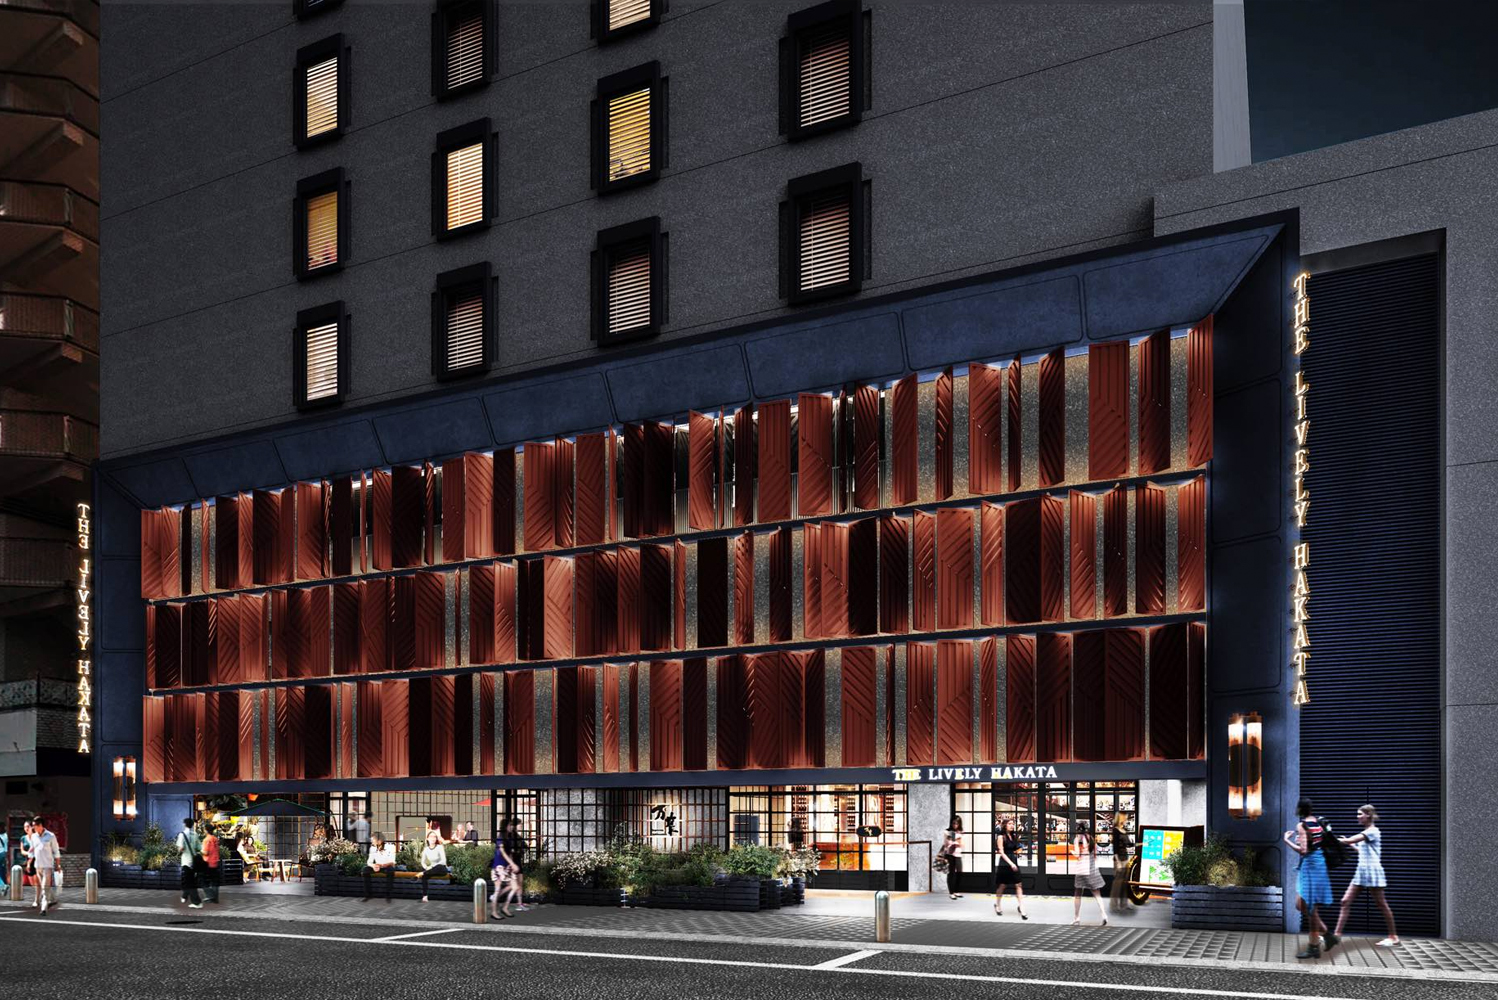 The Lively Hakata hotel will be Global Agents' first location for this new series of lifestyle hotels.